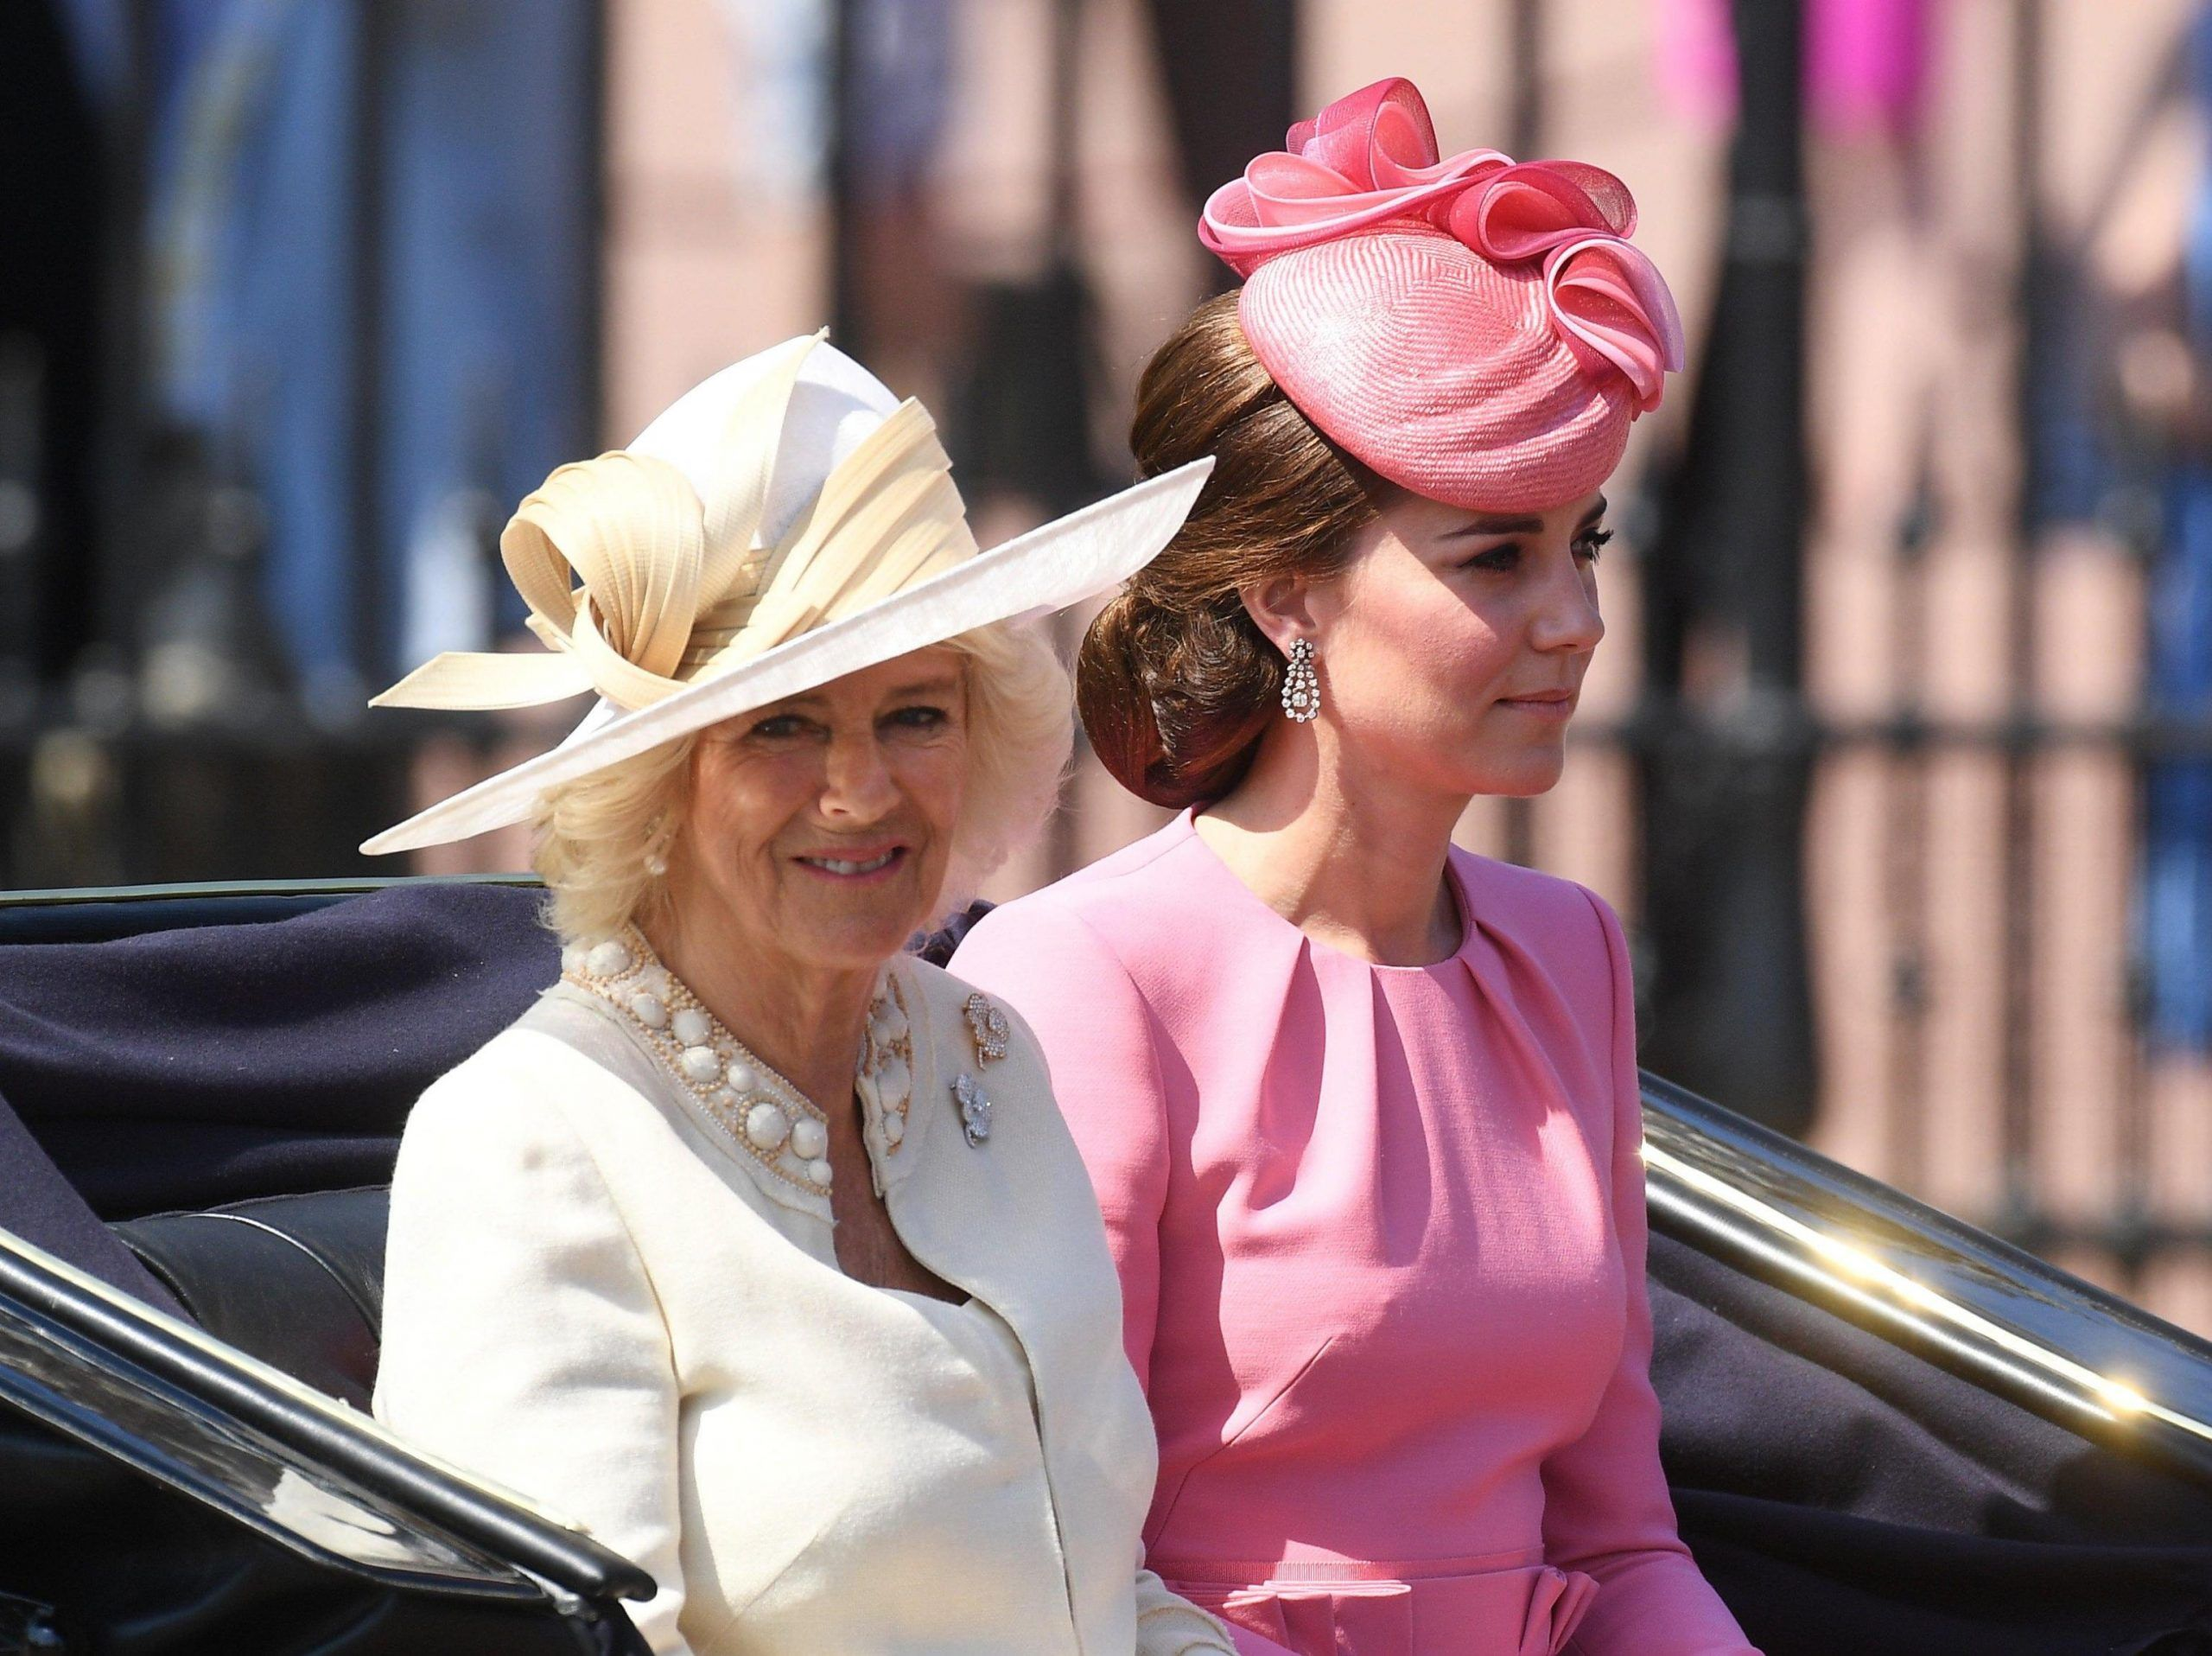 Trooping the Color Queen's 91st birthday parade in London